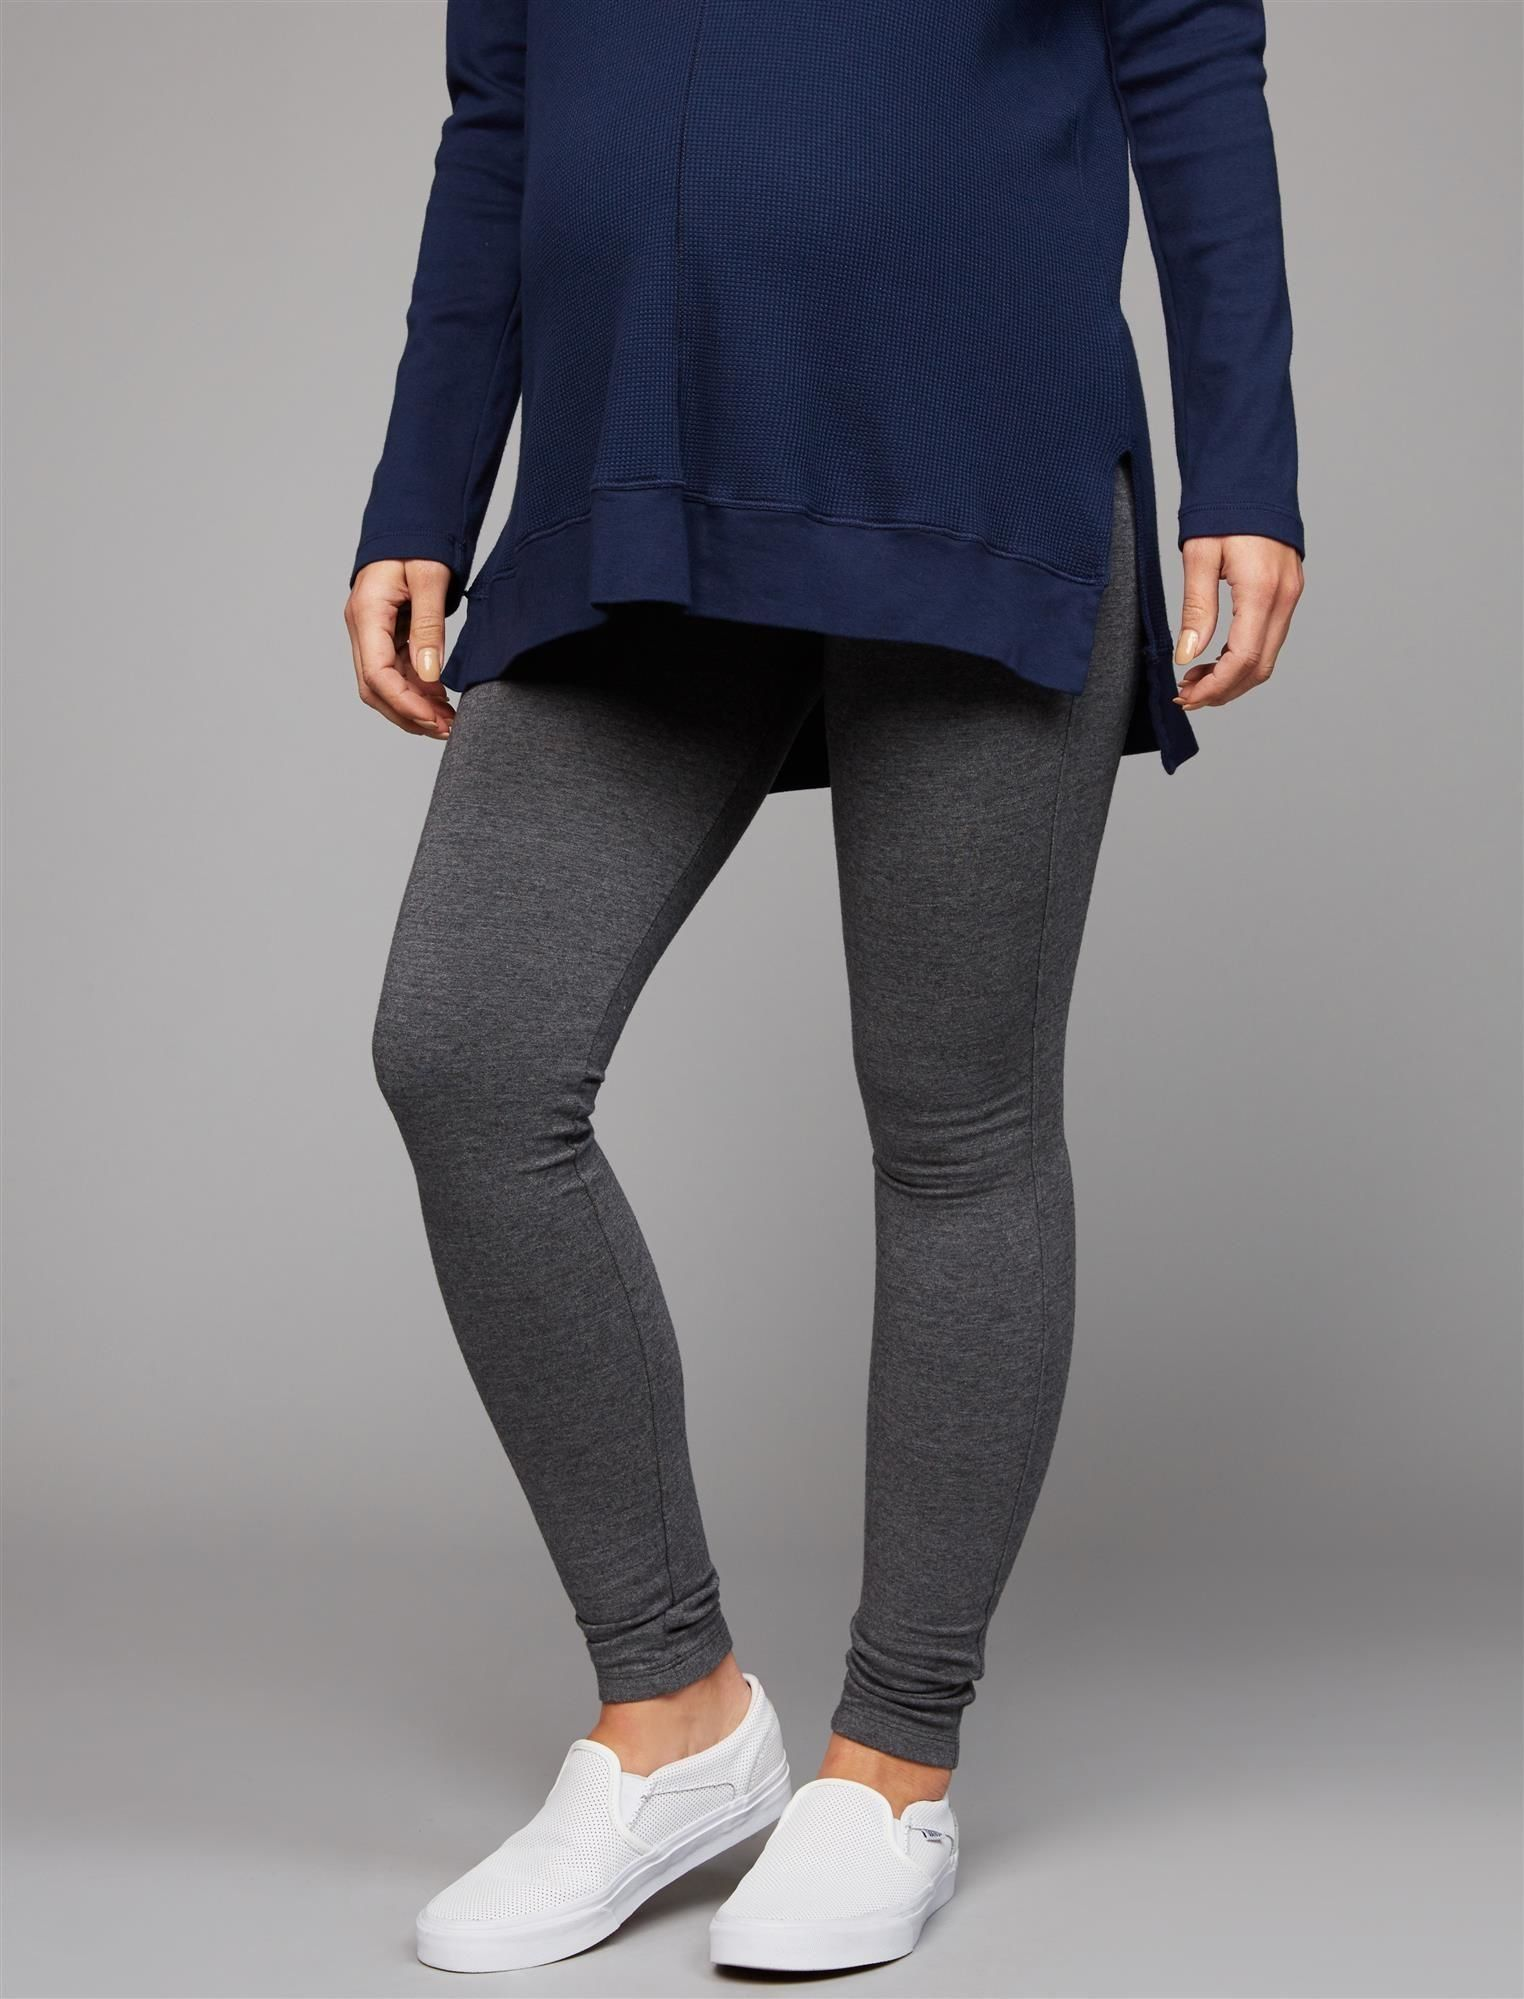 54f1572bd608b Maternity Styles - Splendid Secret Fit Belly French Terry Maternity Leggings  ** Make sure to have a look at this incredible product.